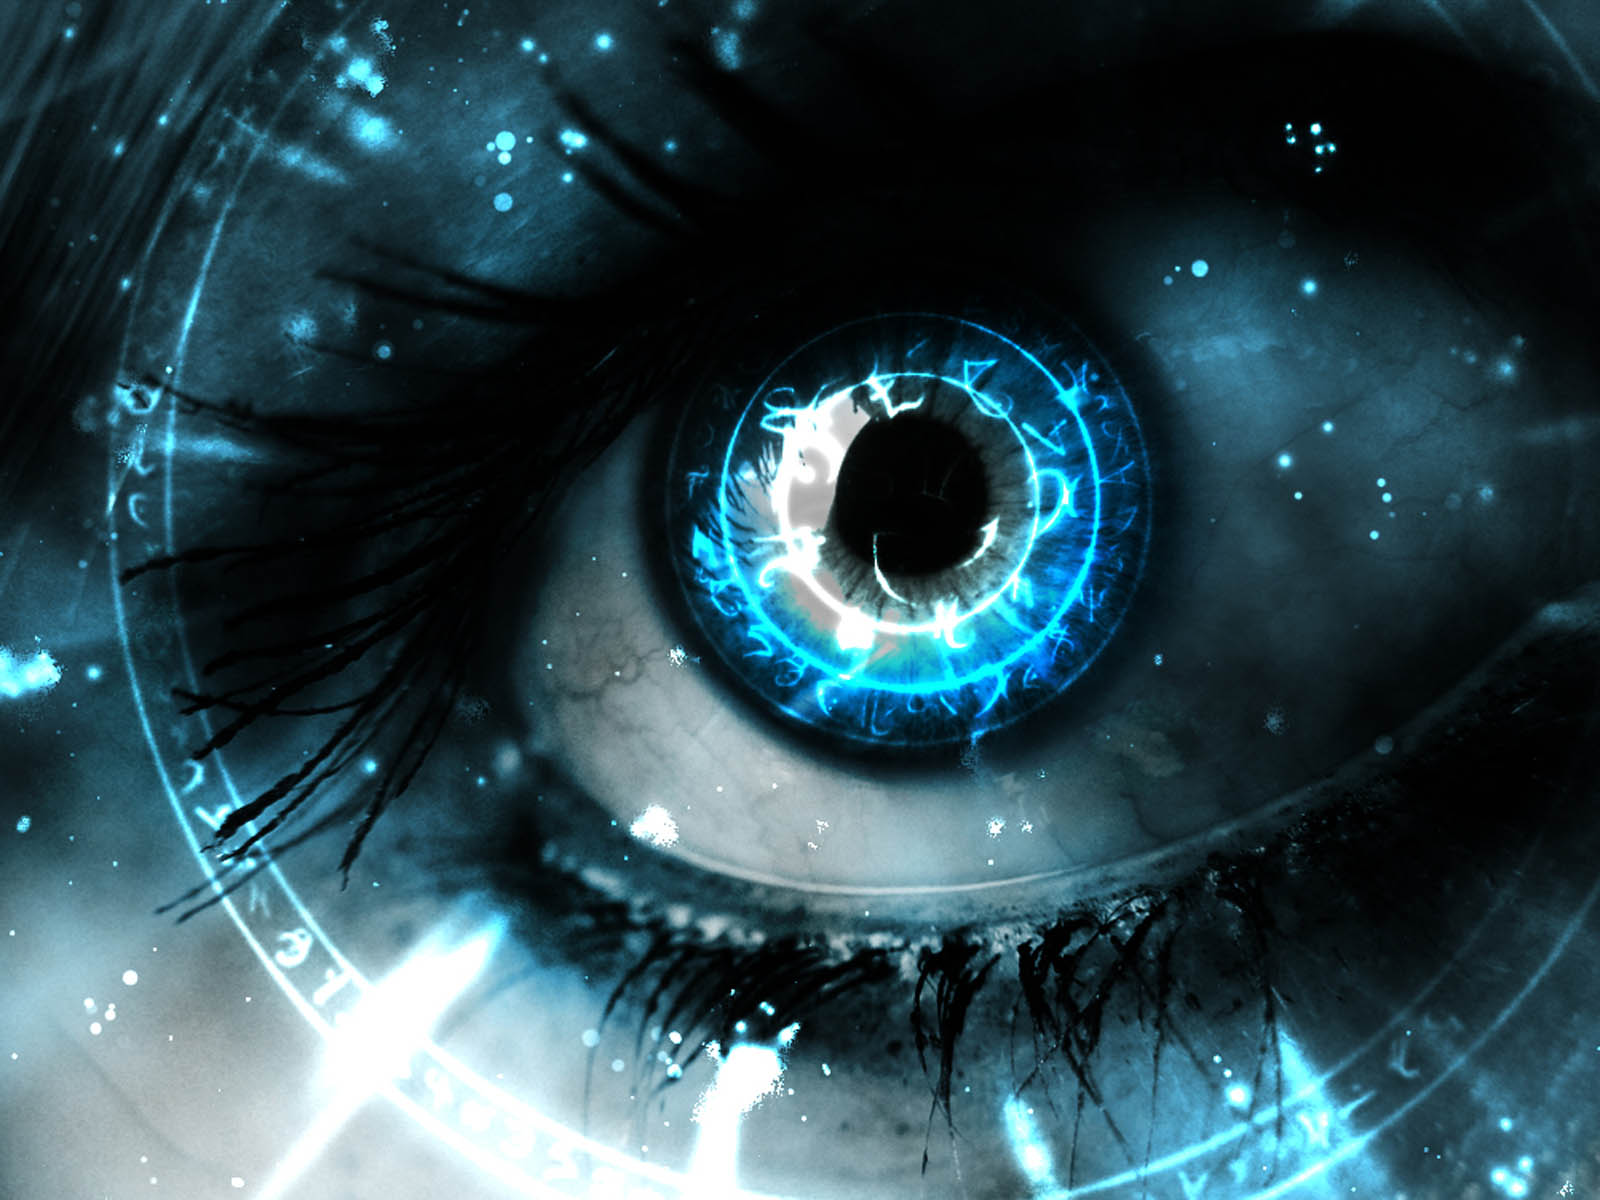 3D_Eye_Wallpapers_8_xdXxH4c